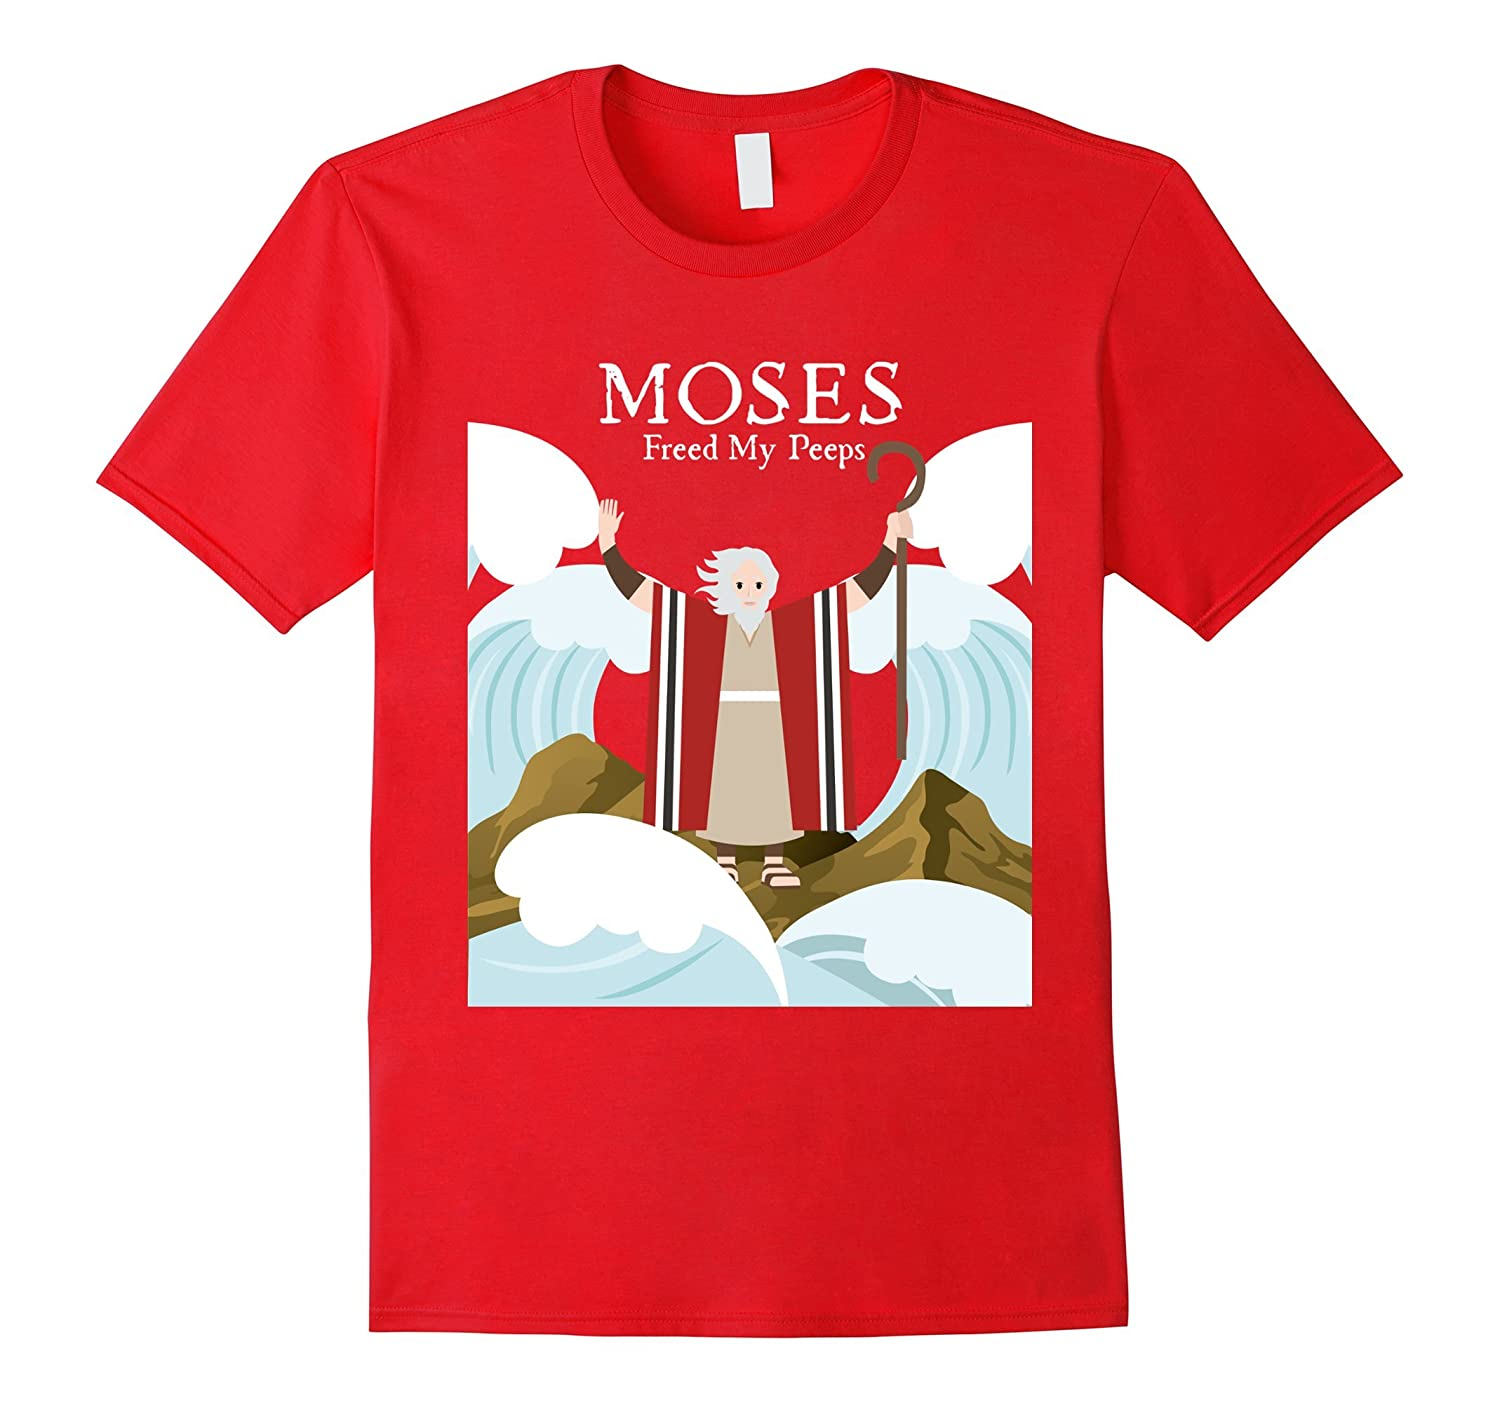 Moses Freed My Peeps T-Shirt For Passover Seder-CD